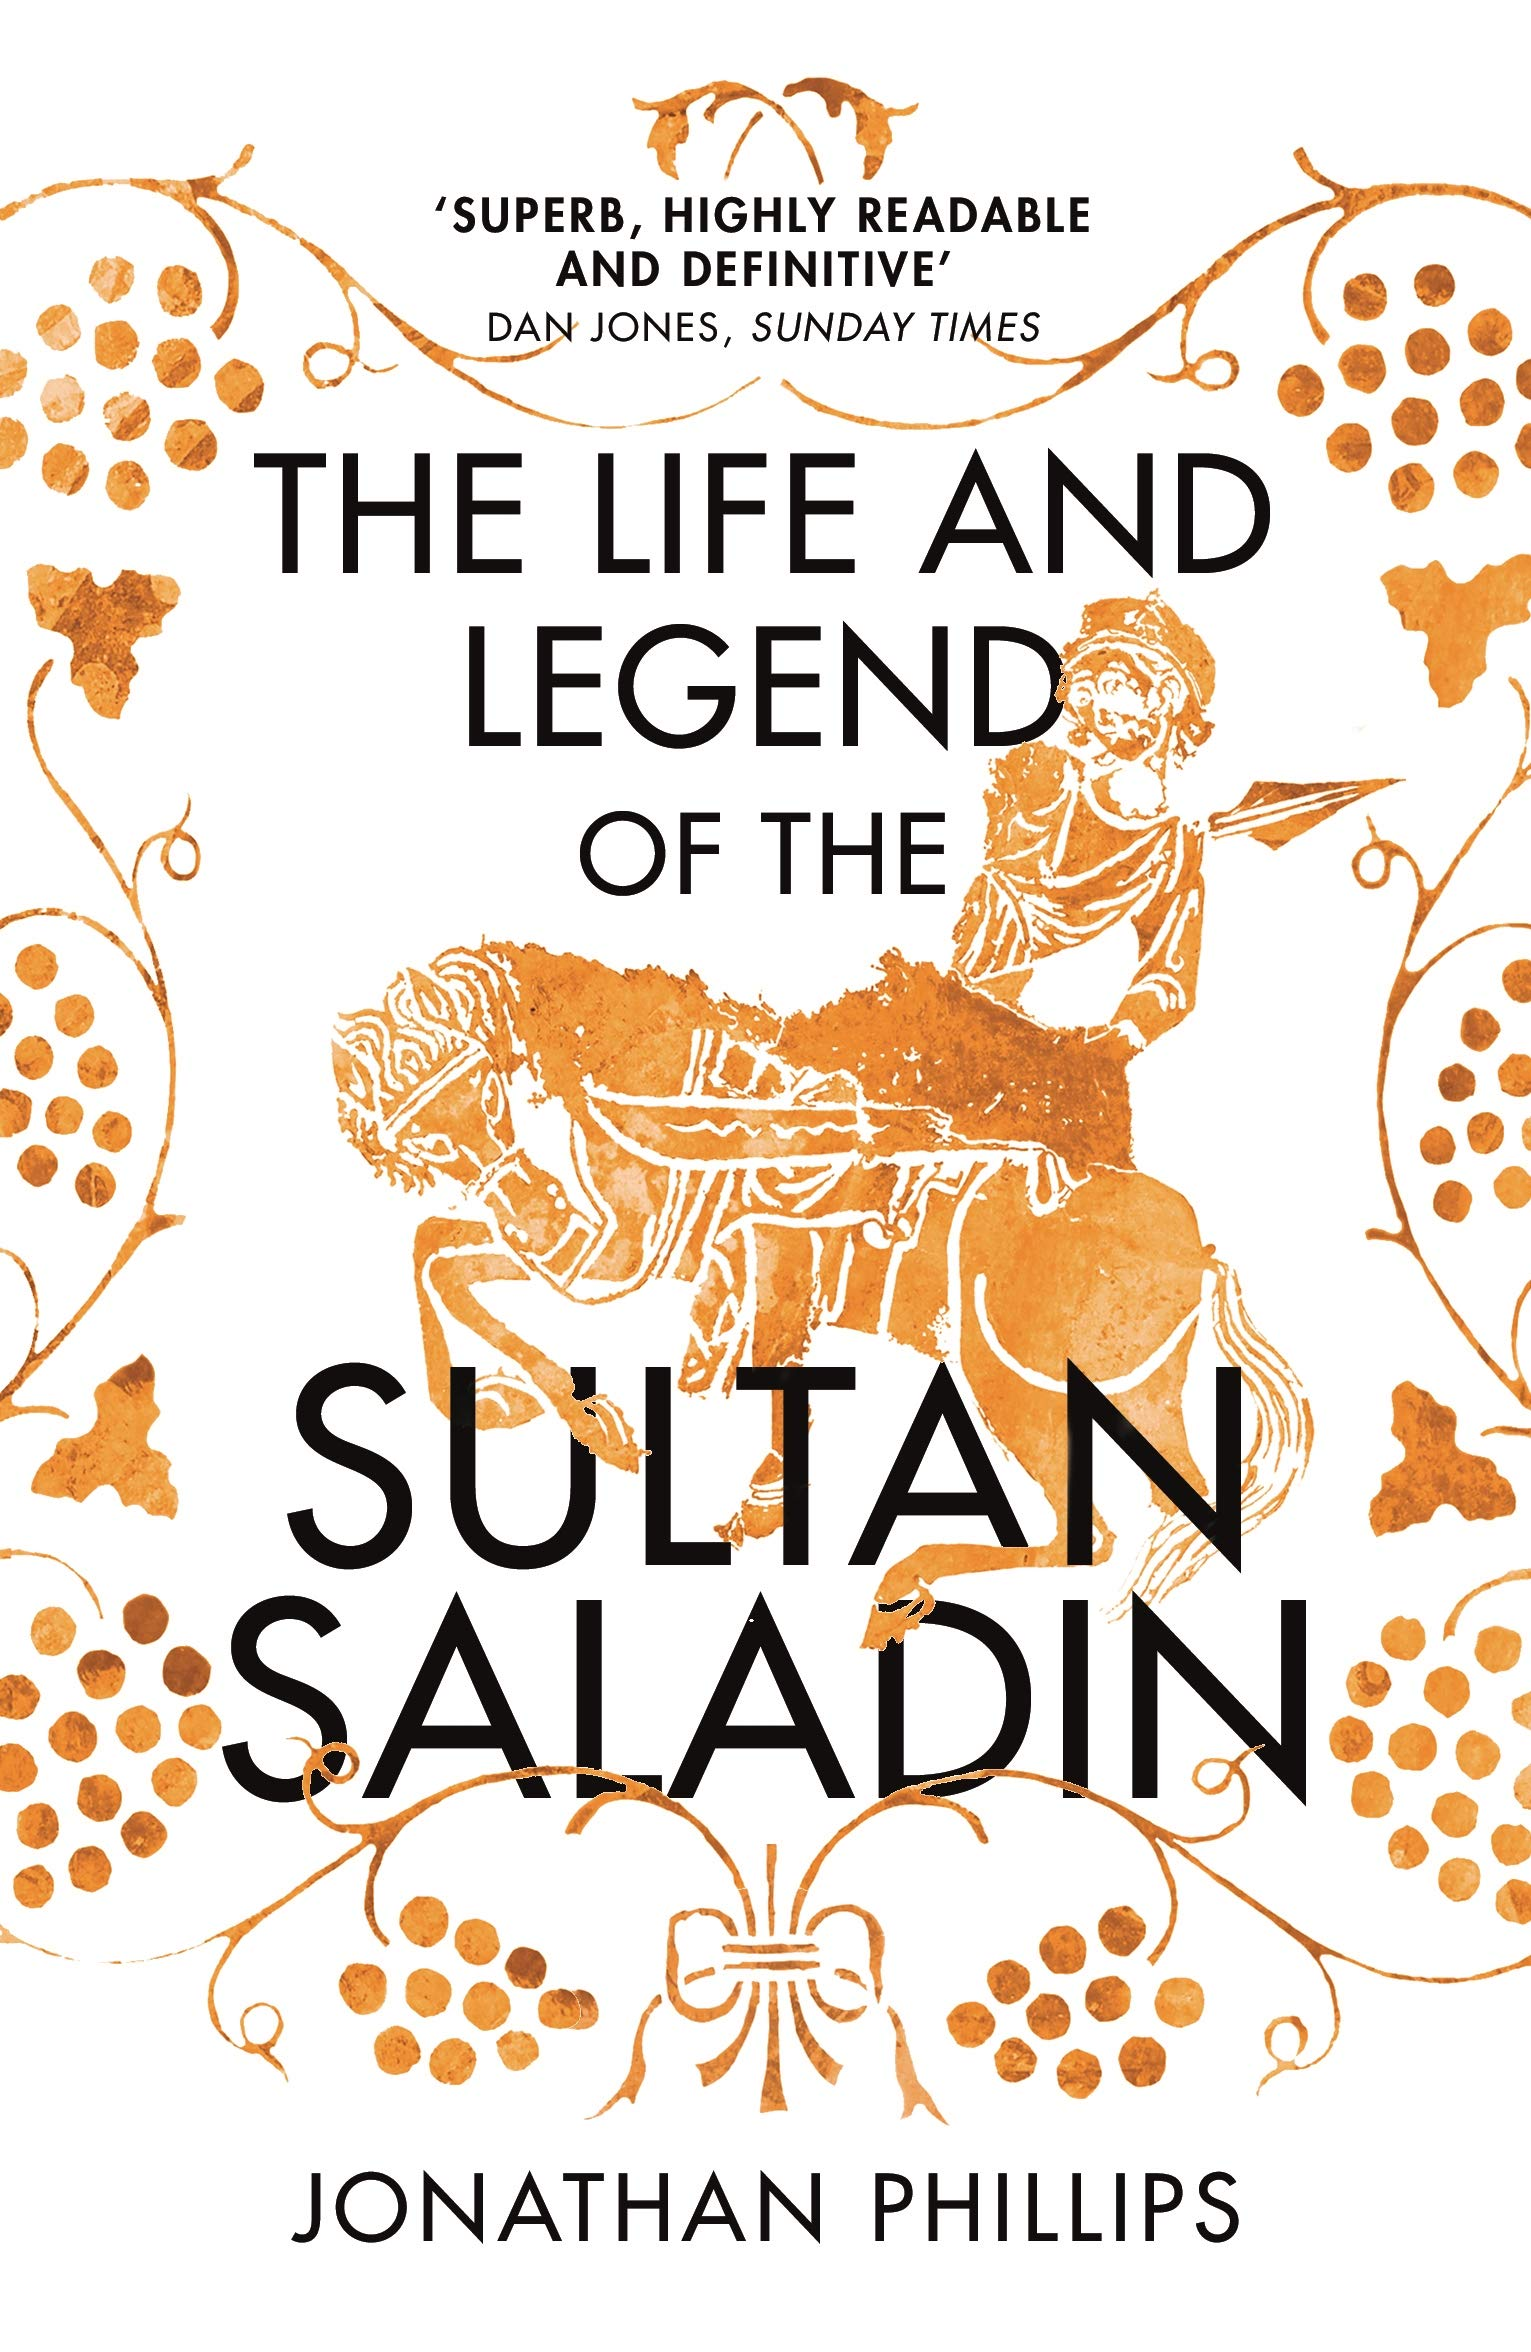 The Life and Legend of the Sultan Saladin Paperback